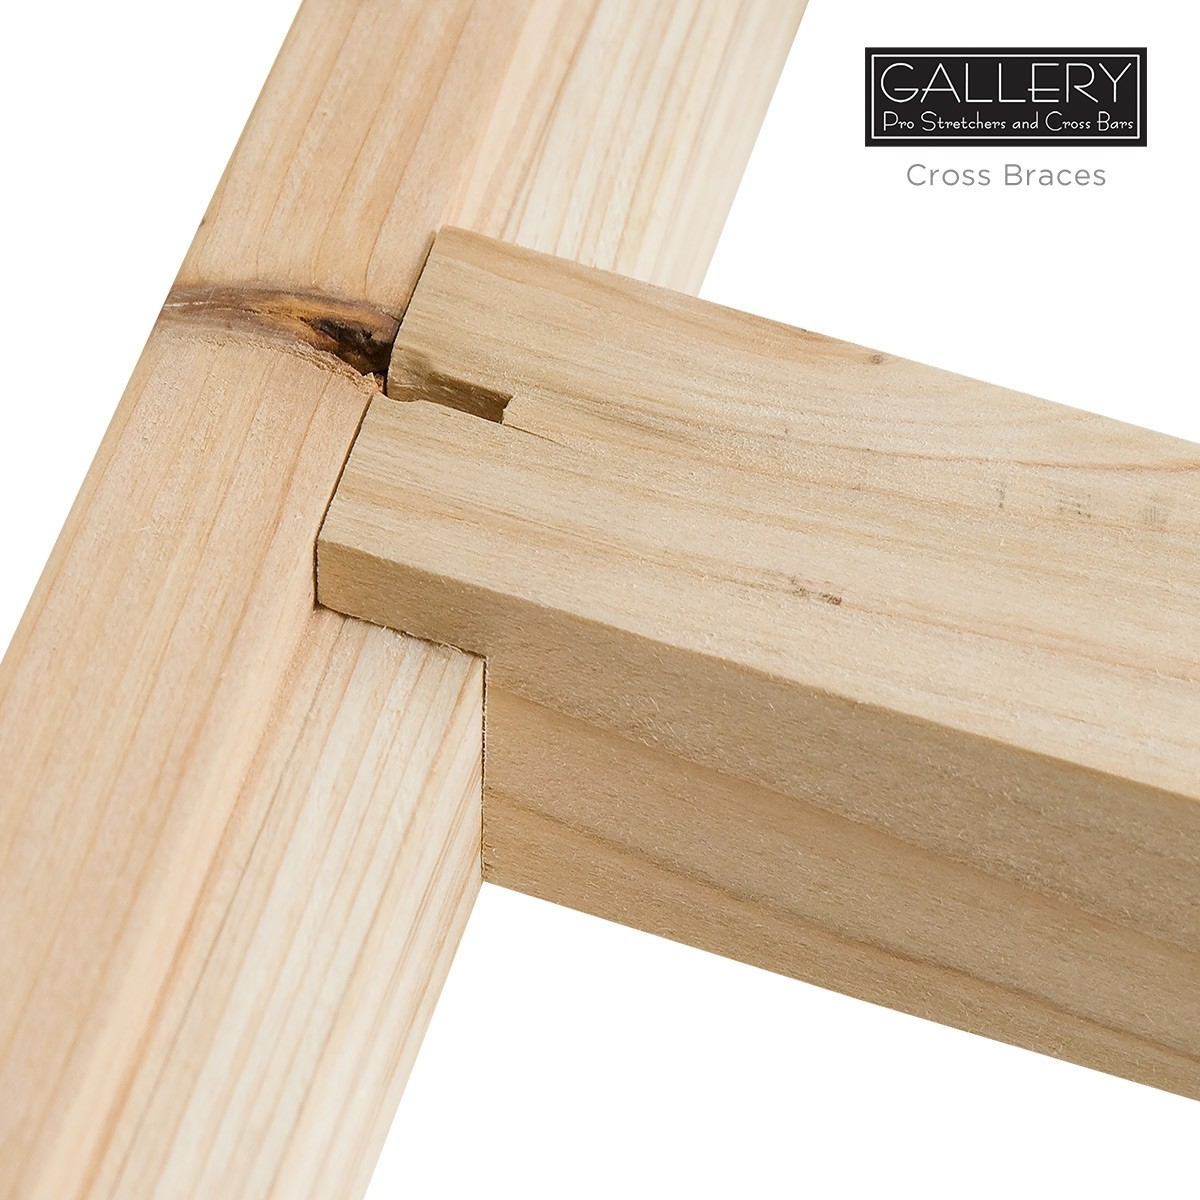 Gallery Pro Cross Braces - Medium Duty